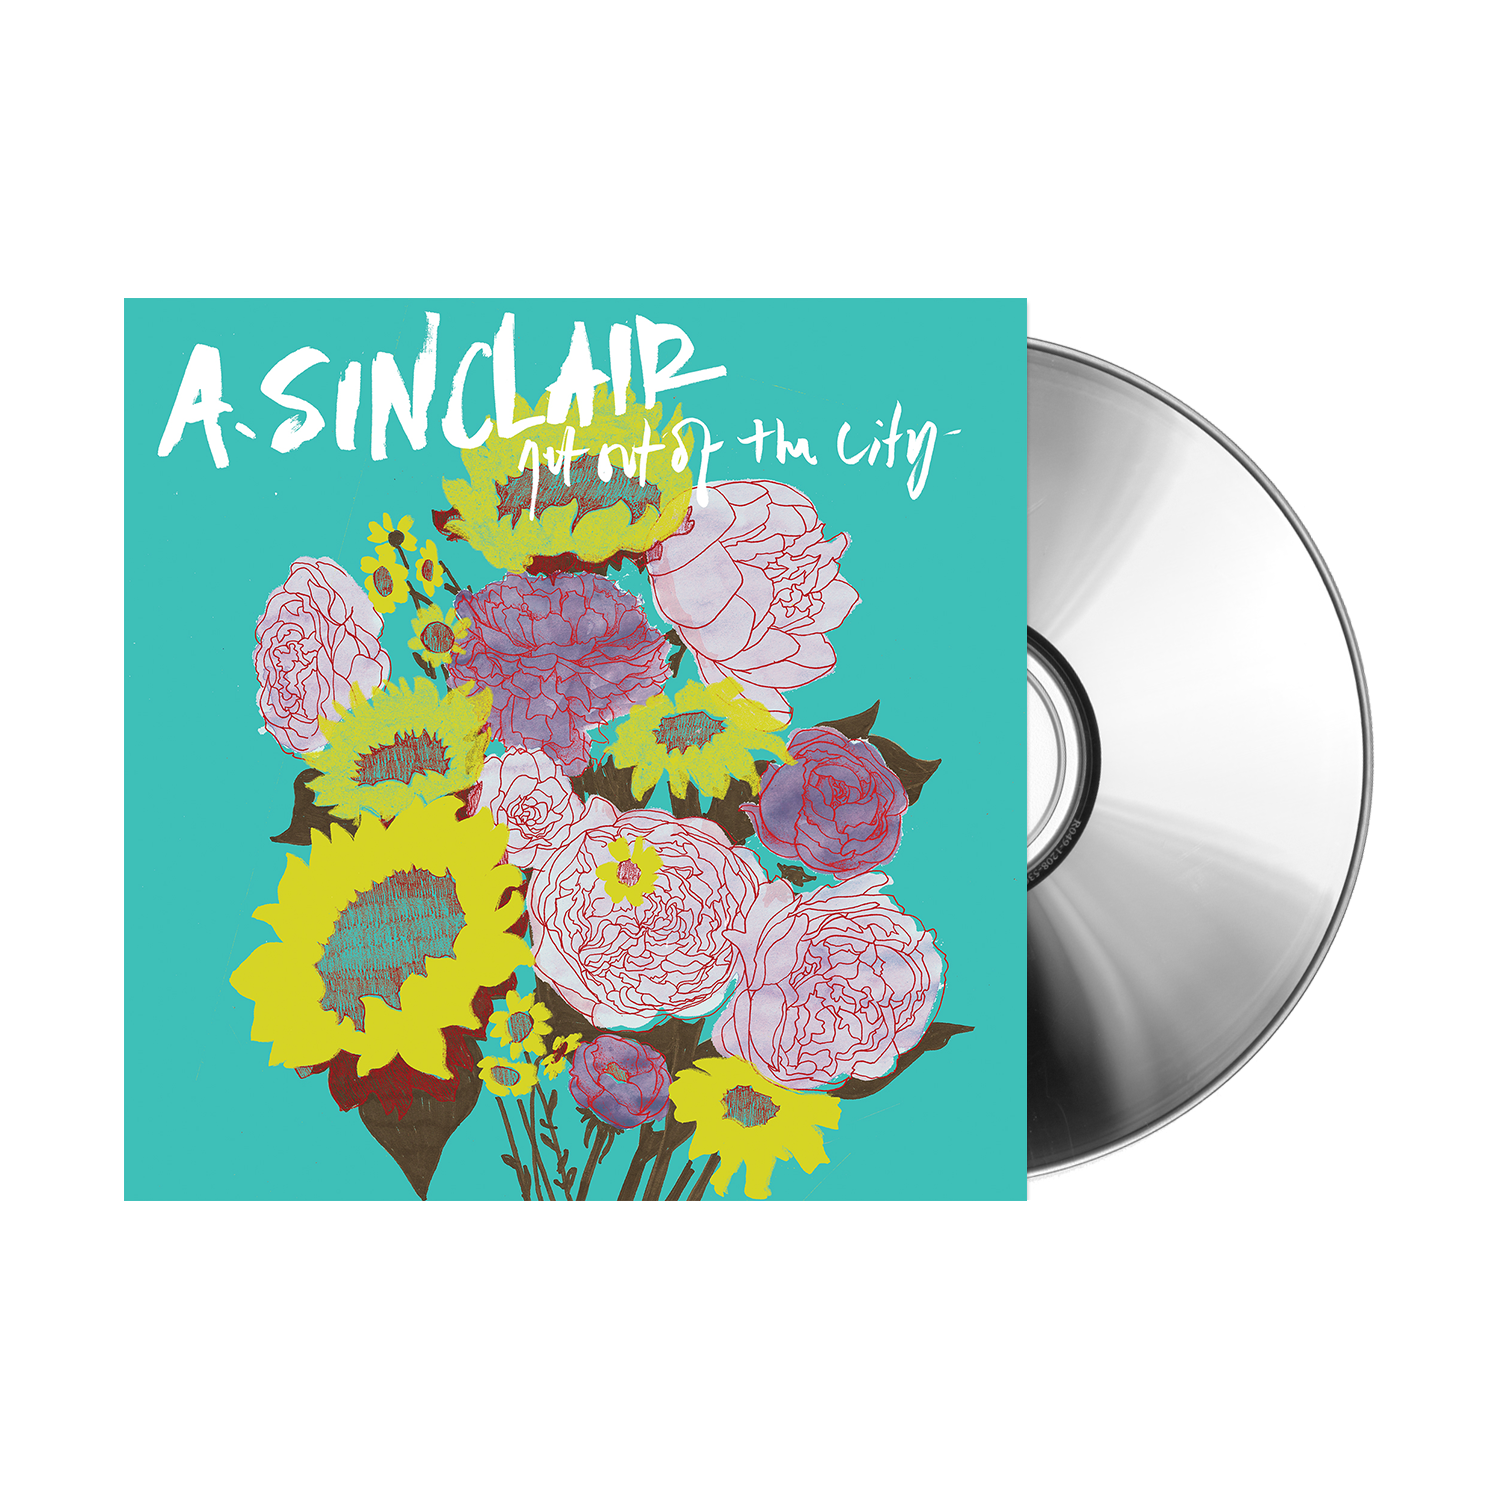 A. Sinclair - Get Out Of The City - CD